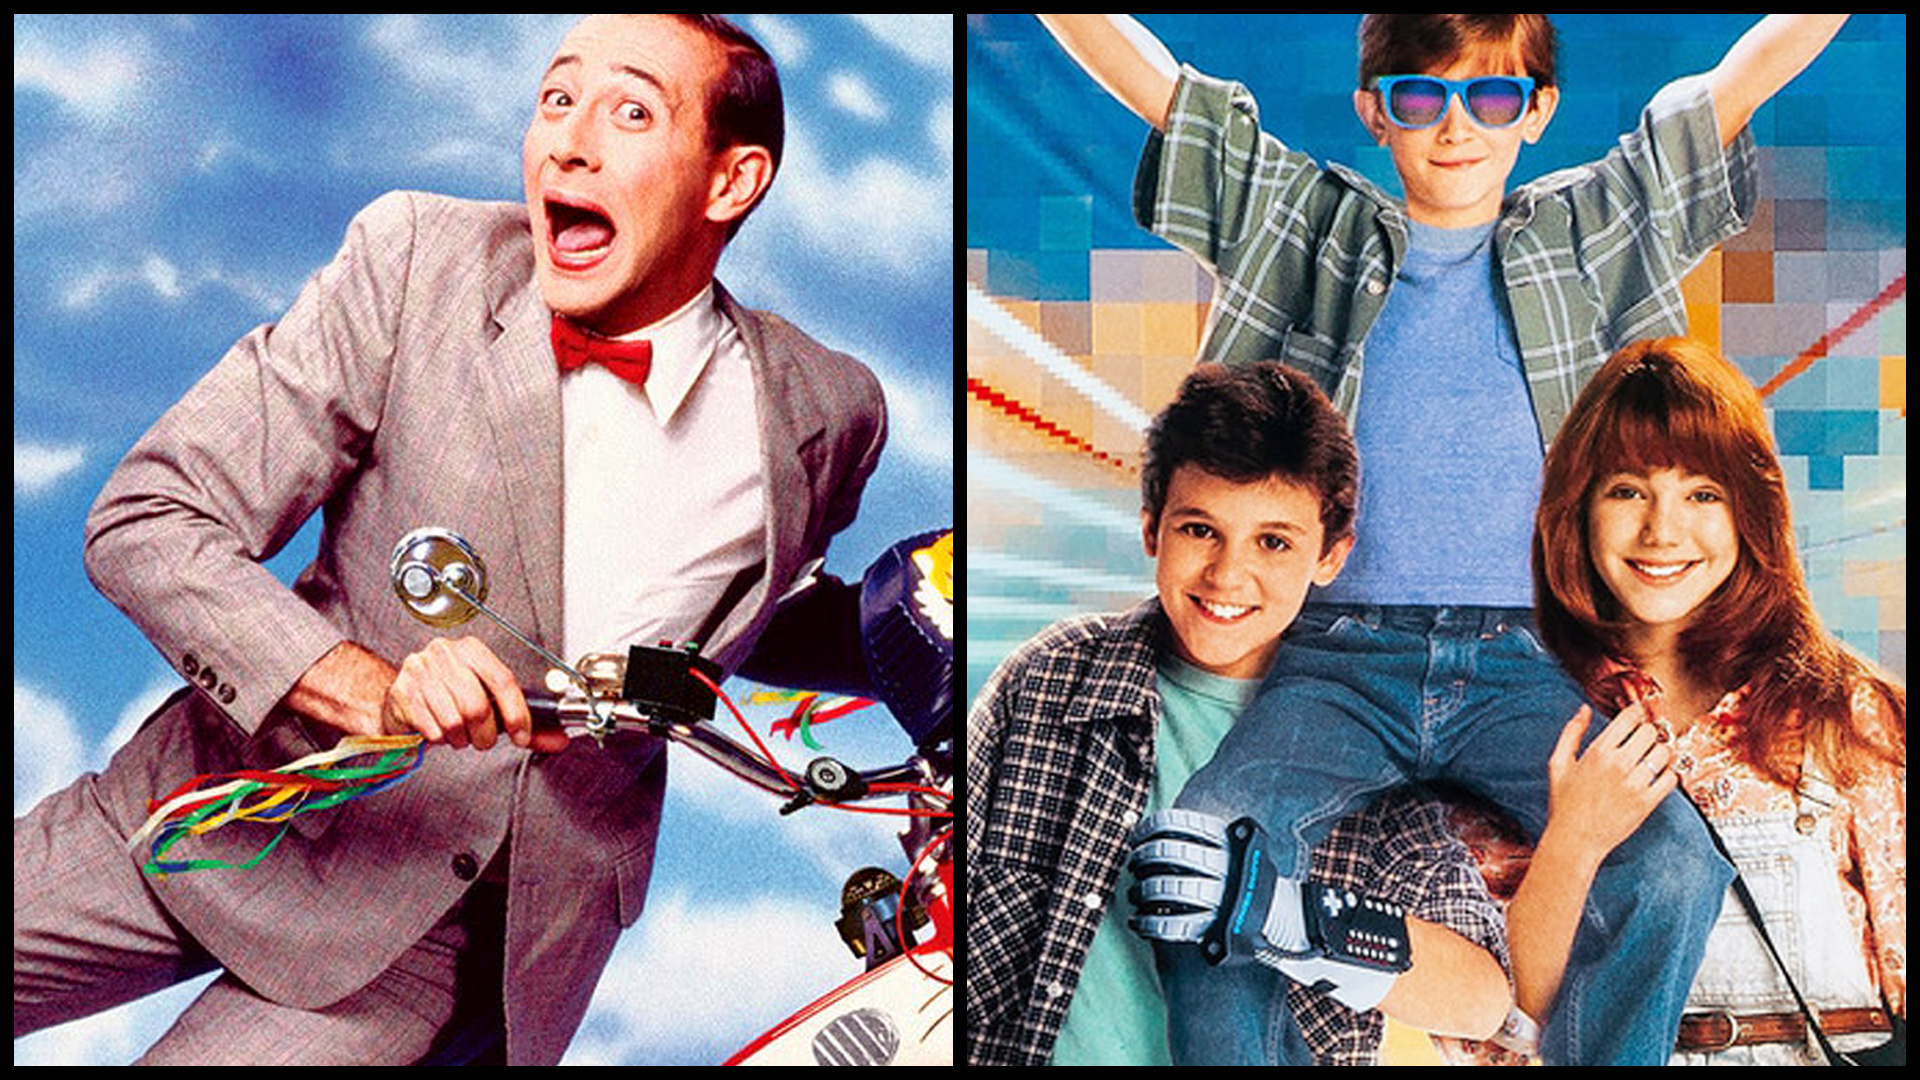 Movie Time! Nostalgia Trip: Pee-Wee's Big Adventure (1985) and The Wizard (1989)